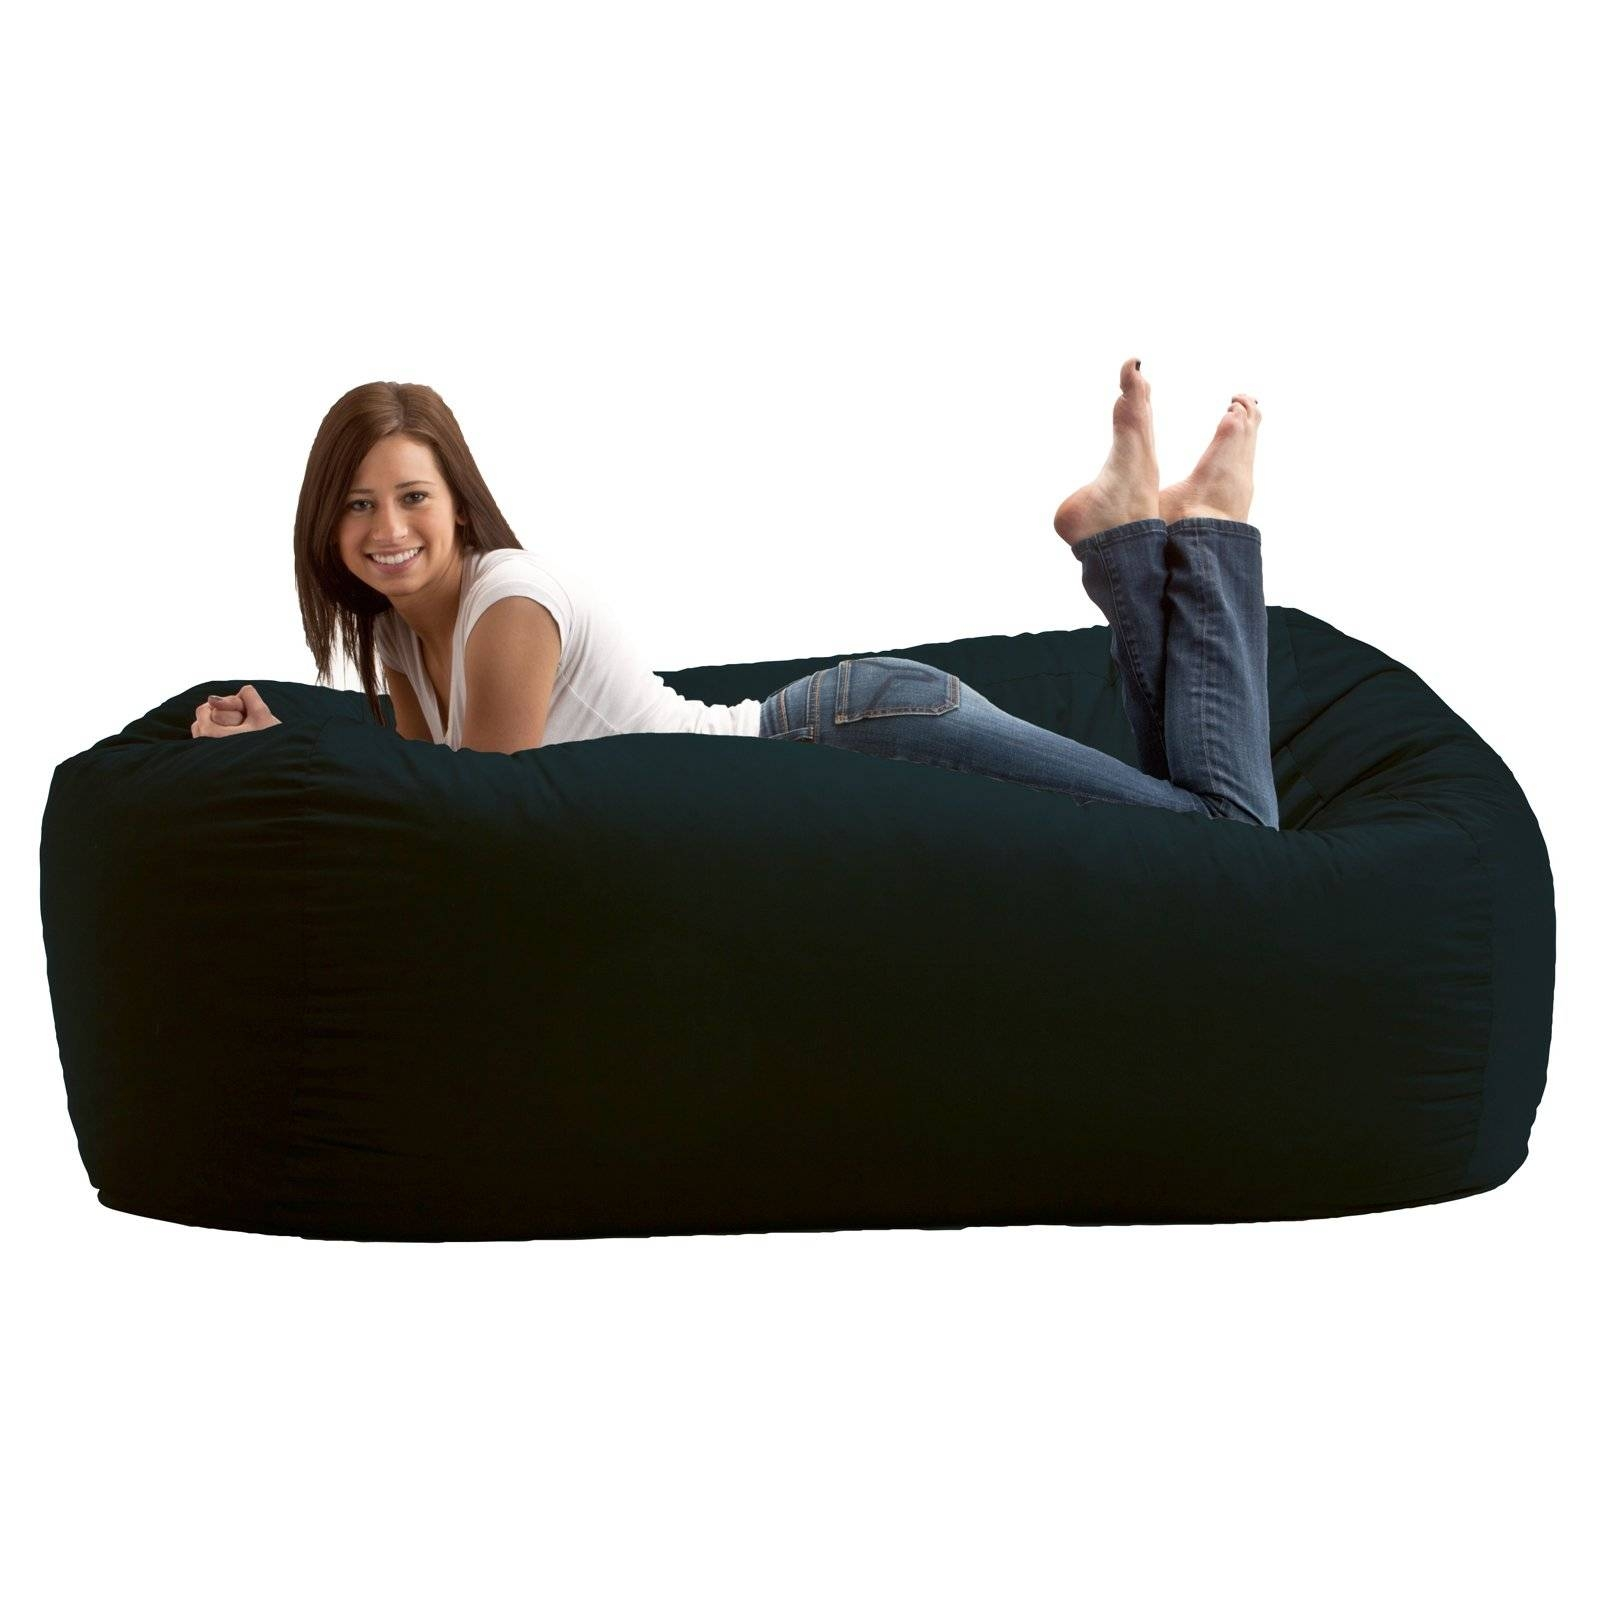 Fuf 4 Ft. Large Comfort Suede Bean Bag Lounger | Hayneedle pertaining to Bean Bag Sofas and Chairs (Image 11 of 15)